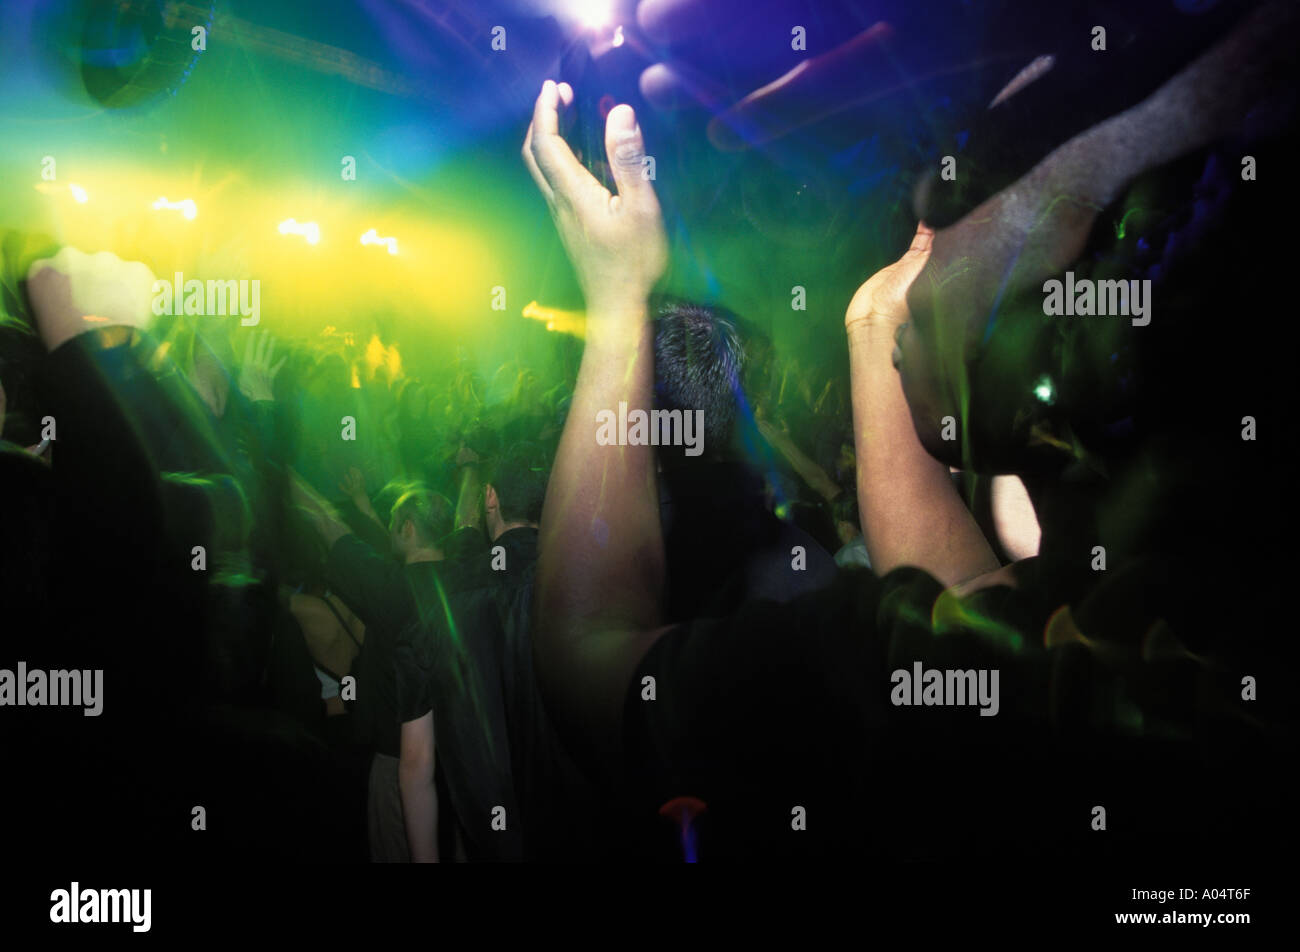 Dancefloor at Gods Kitchen The Sanctuary night club Birmingham - Stock Image